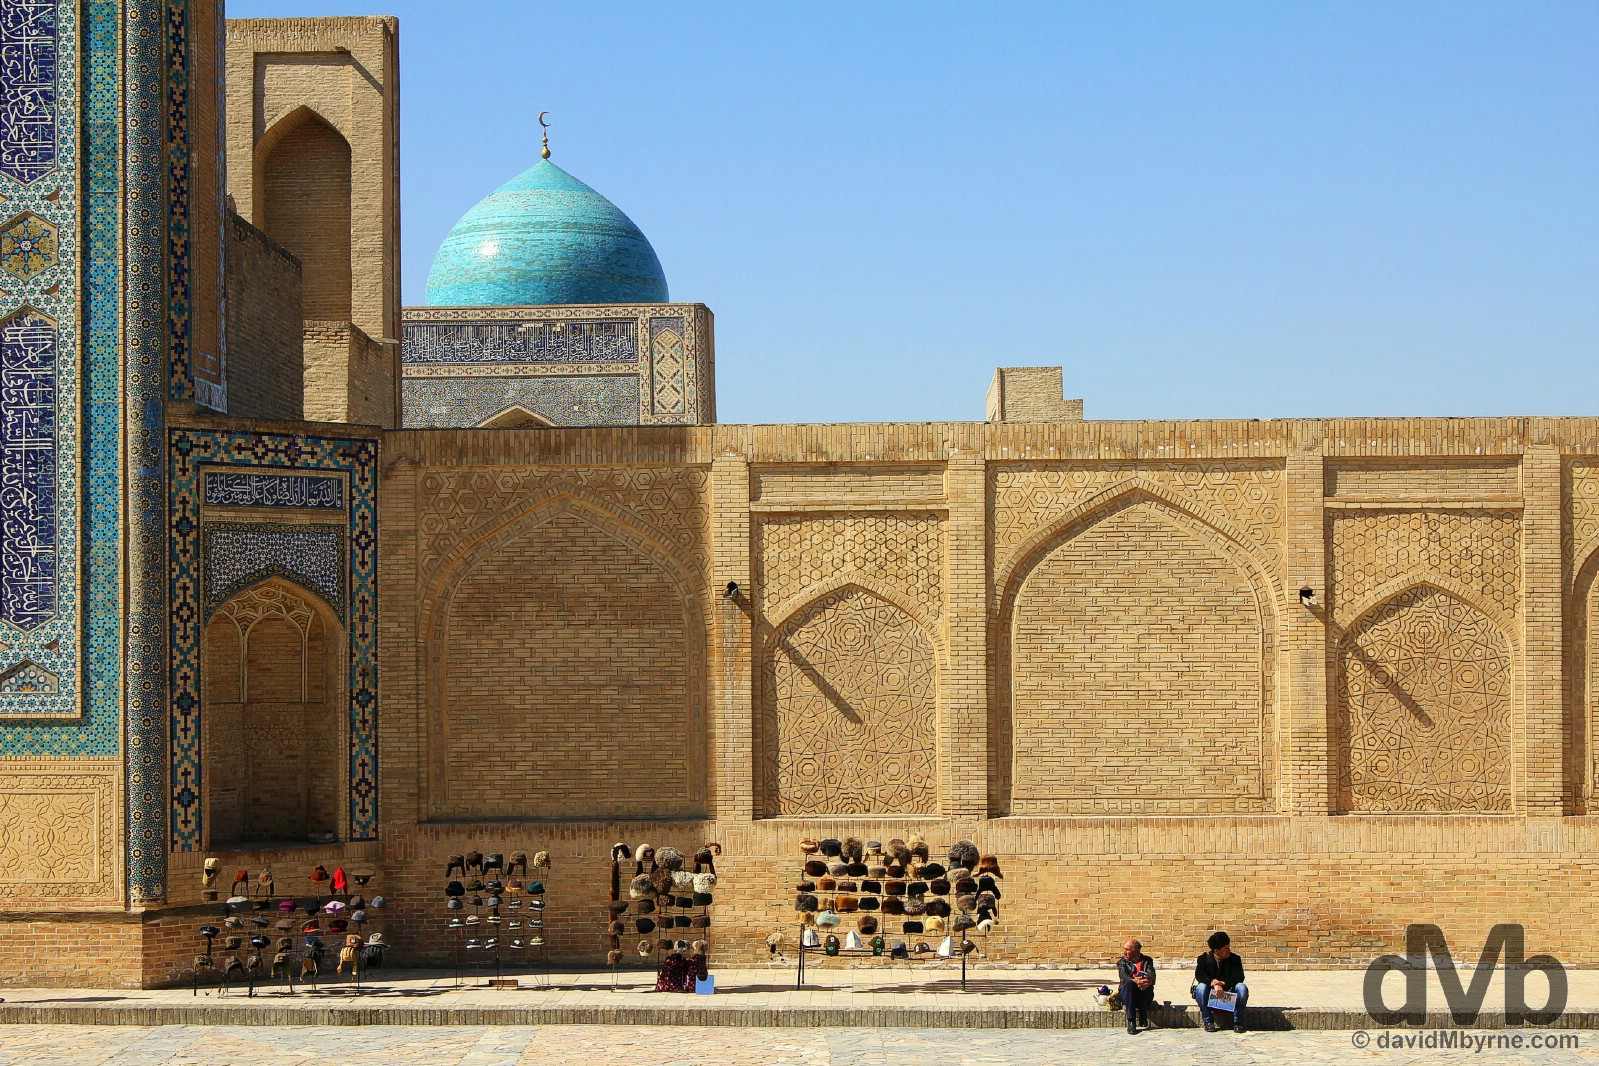 Sitting by the walls of the Kalon Mosque as seen from the Mir-i-Arab Medressa in Bukhara, Uzbekistan. March 12, 2015.